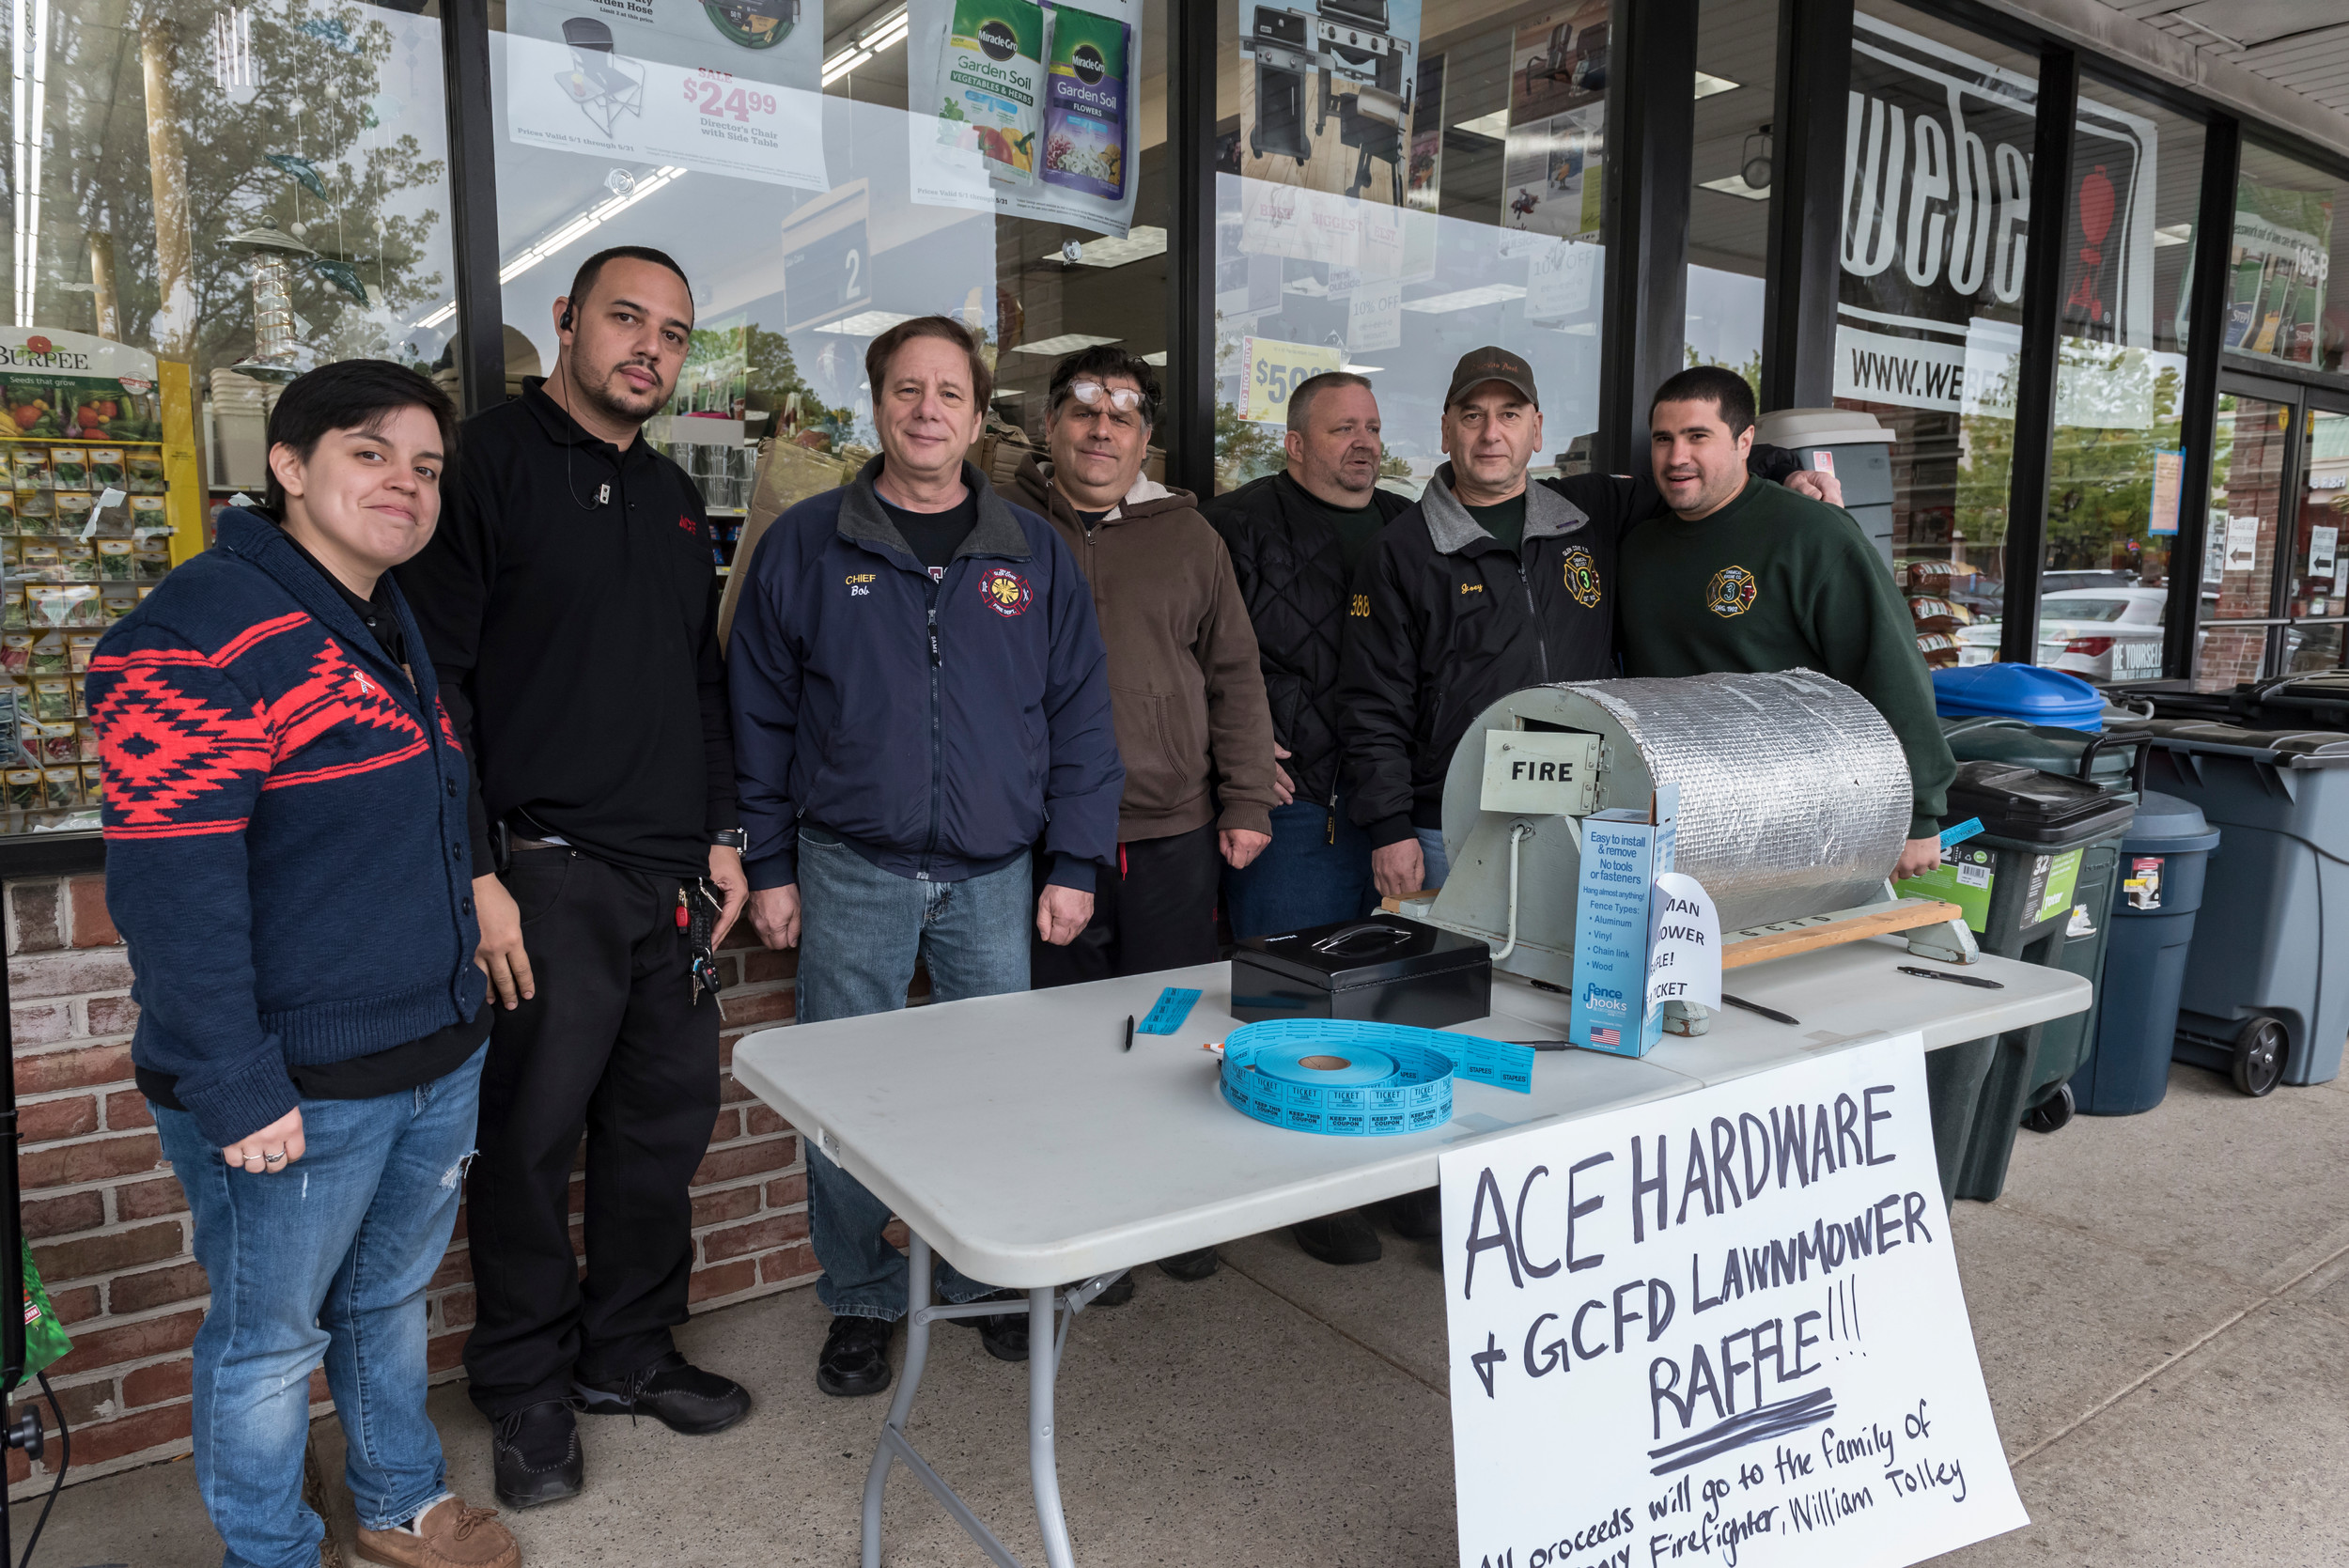 Photos by Roni Chastain/Herald